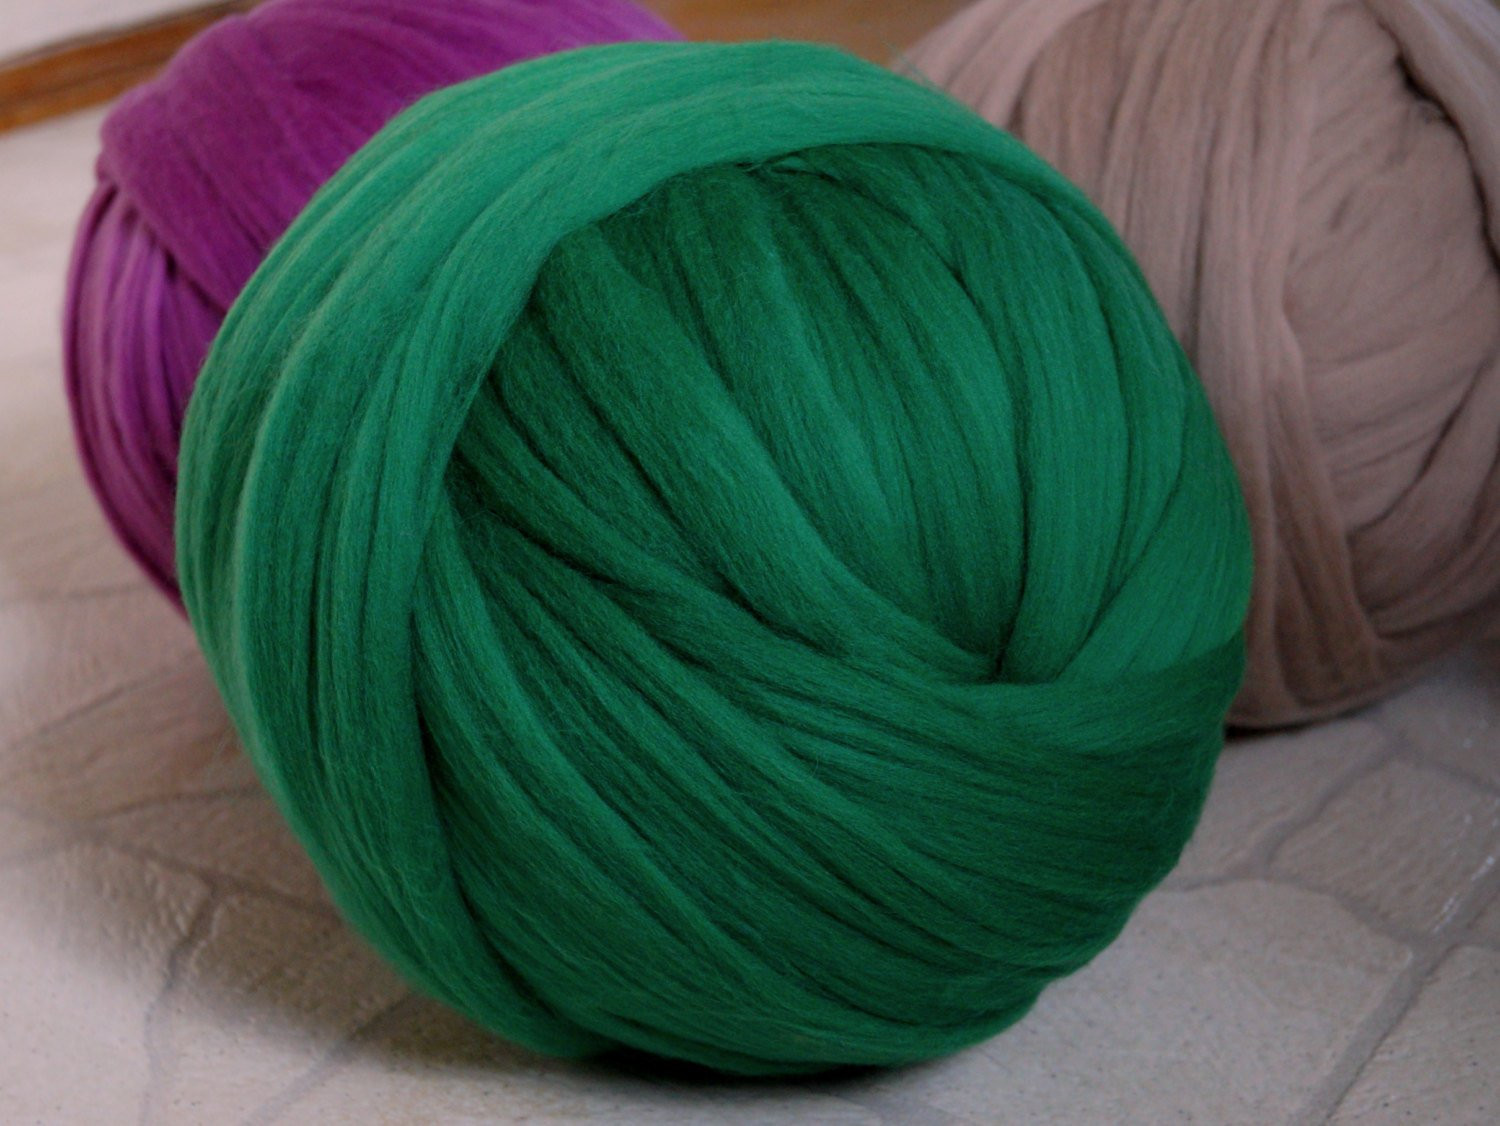 Roving Yarn Awesome Sale Super Chunky Yarn Roving Wool Super Chunky Merino Of Marvelous 45 Pictures Roving Yarn